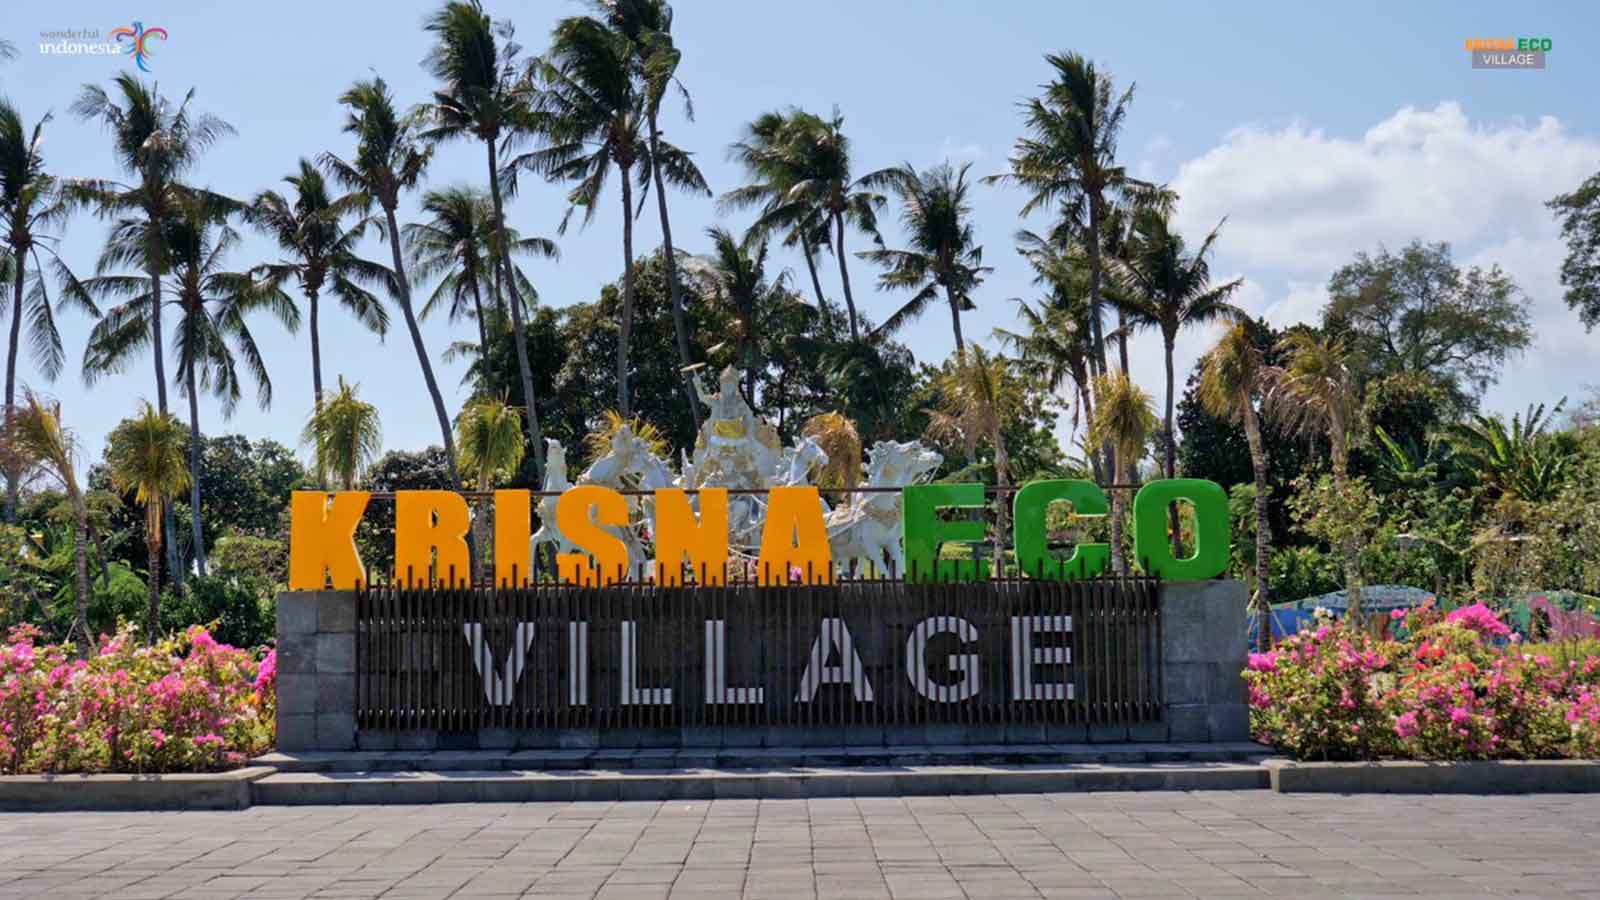 Krisna Eco Village Outlet